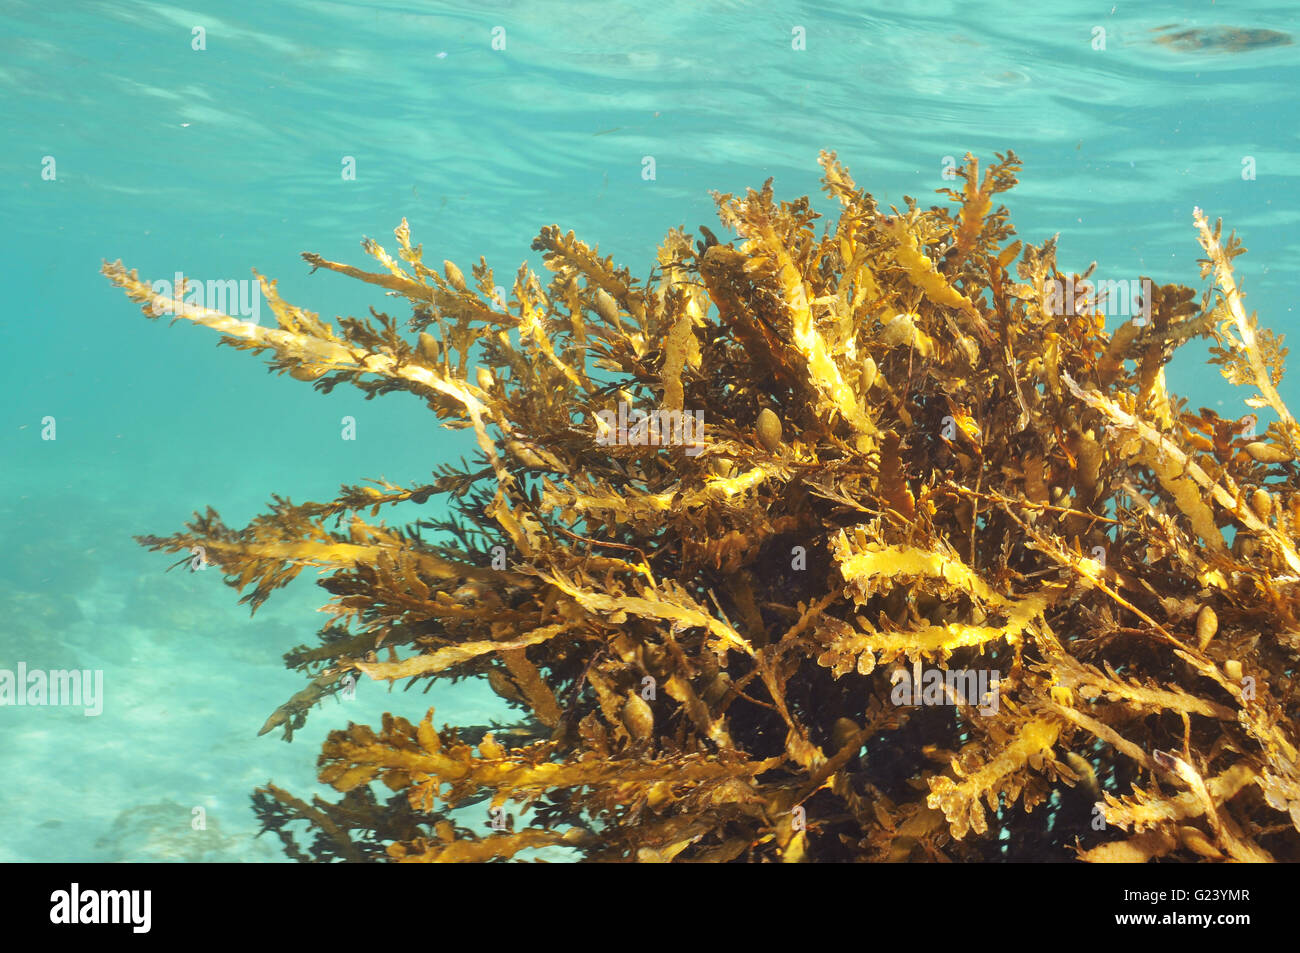 Brown seaweeds in very shallow water - Stock Image